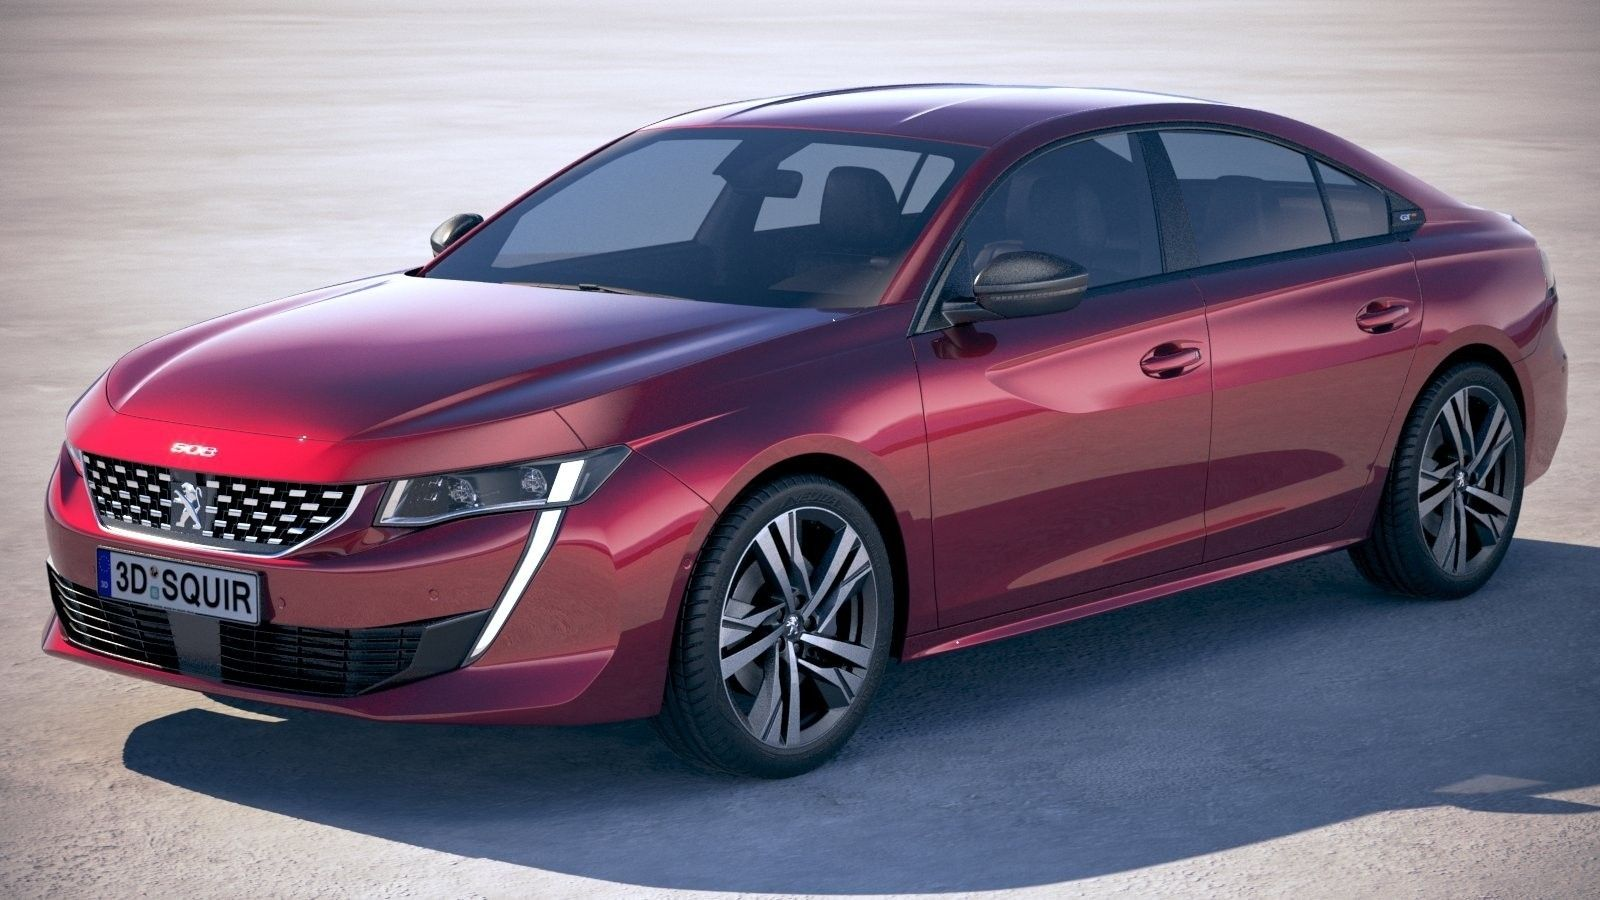 2019 Peugeot 508 Overview and Price Car Gallery